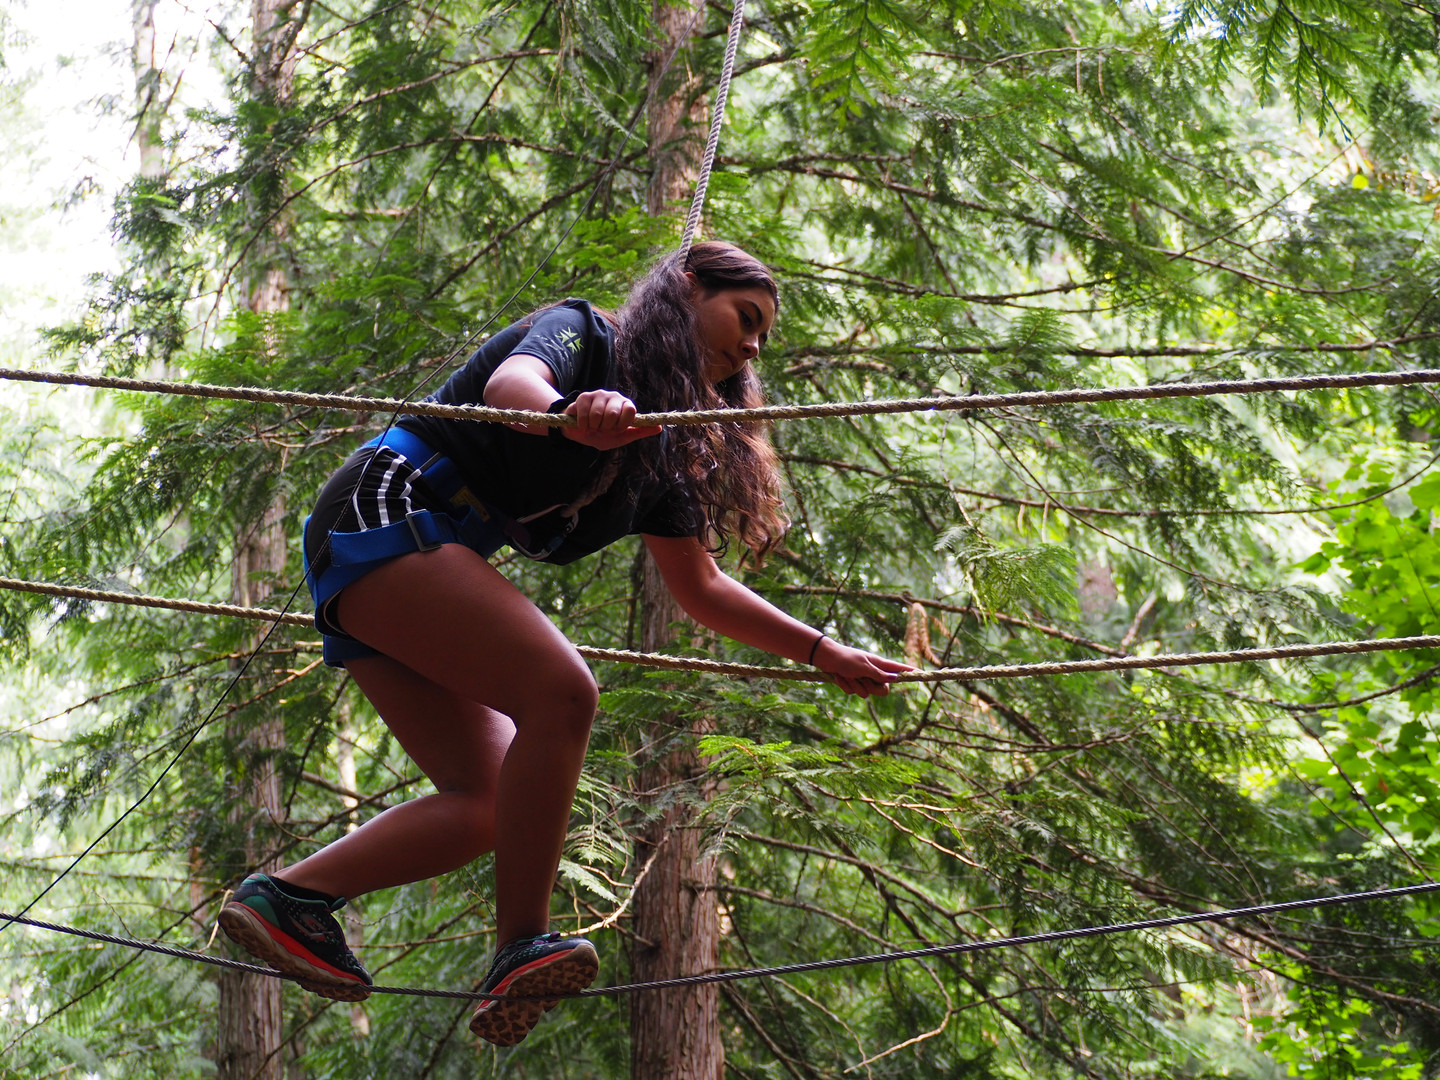 1:15PM ELECTIVES (HIGH ROPES)